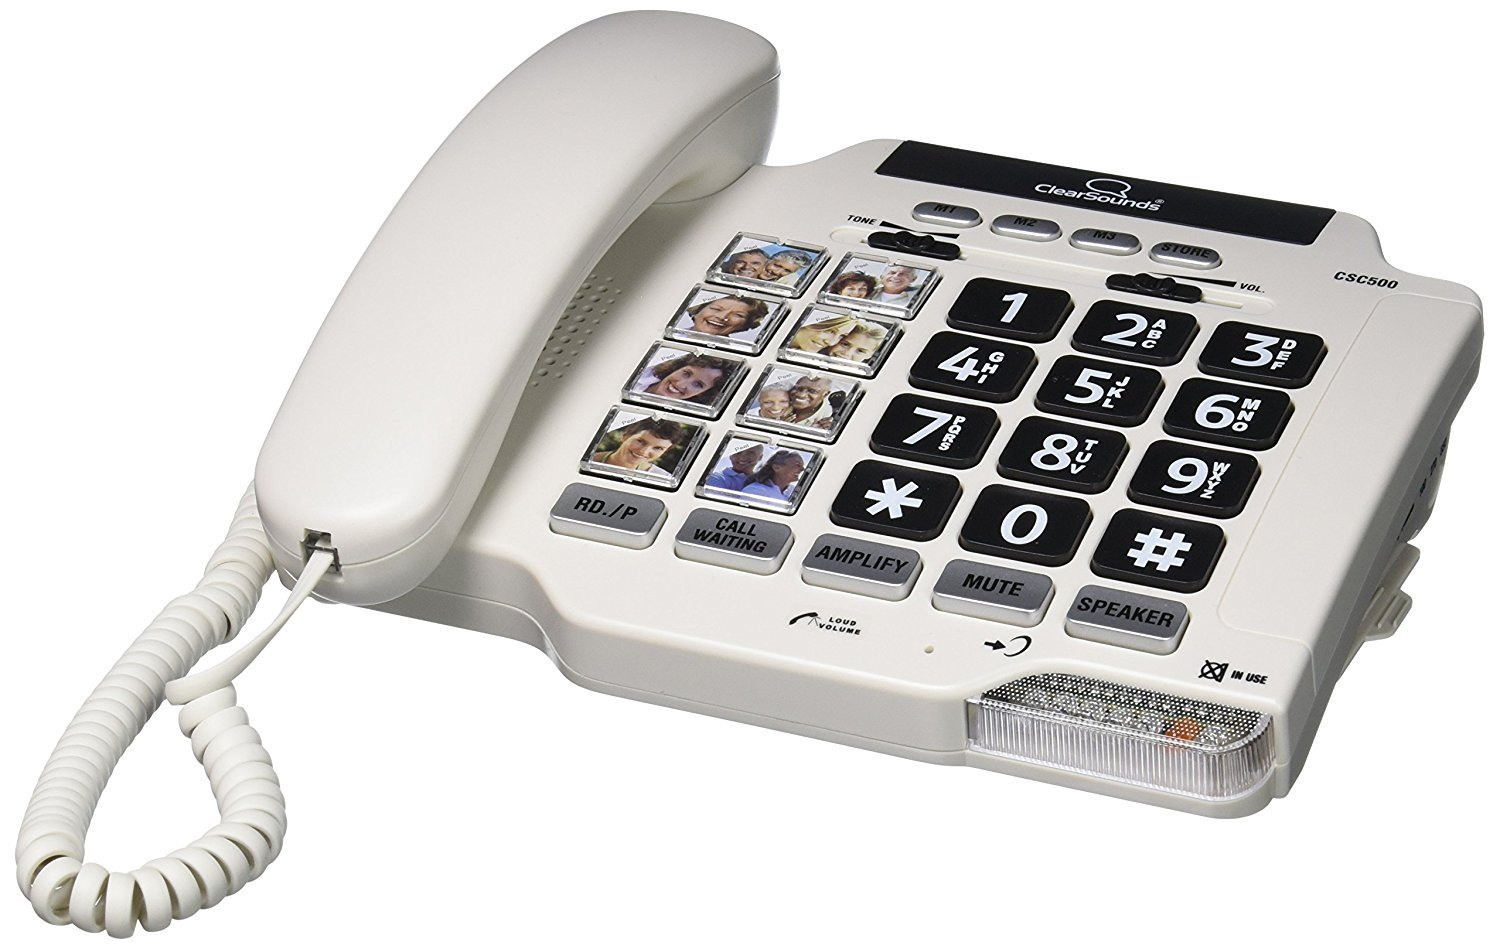 ClearSounds CSCSC500 Amplified Landline Telephone with Speakerphone and Photo Frame Buttons - White by ClearSounds